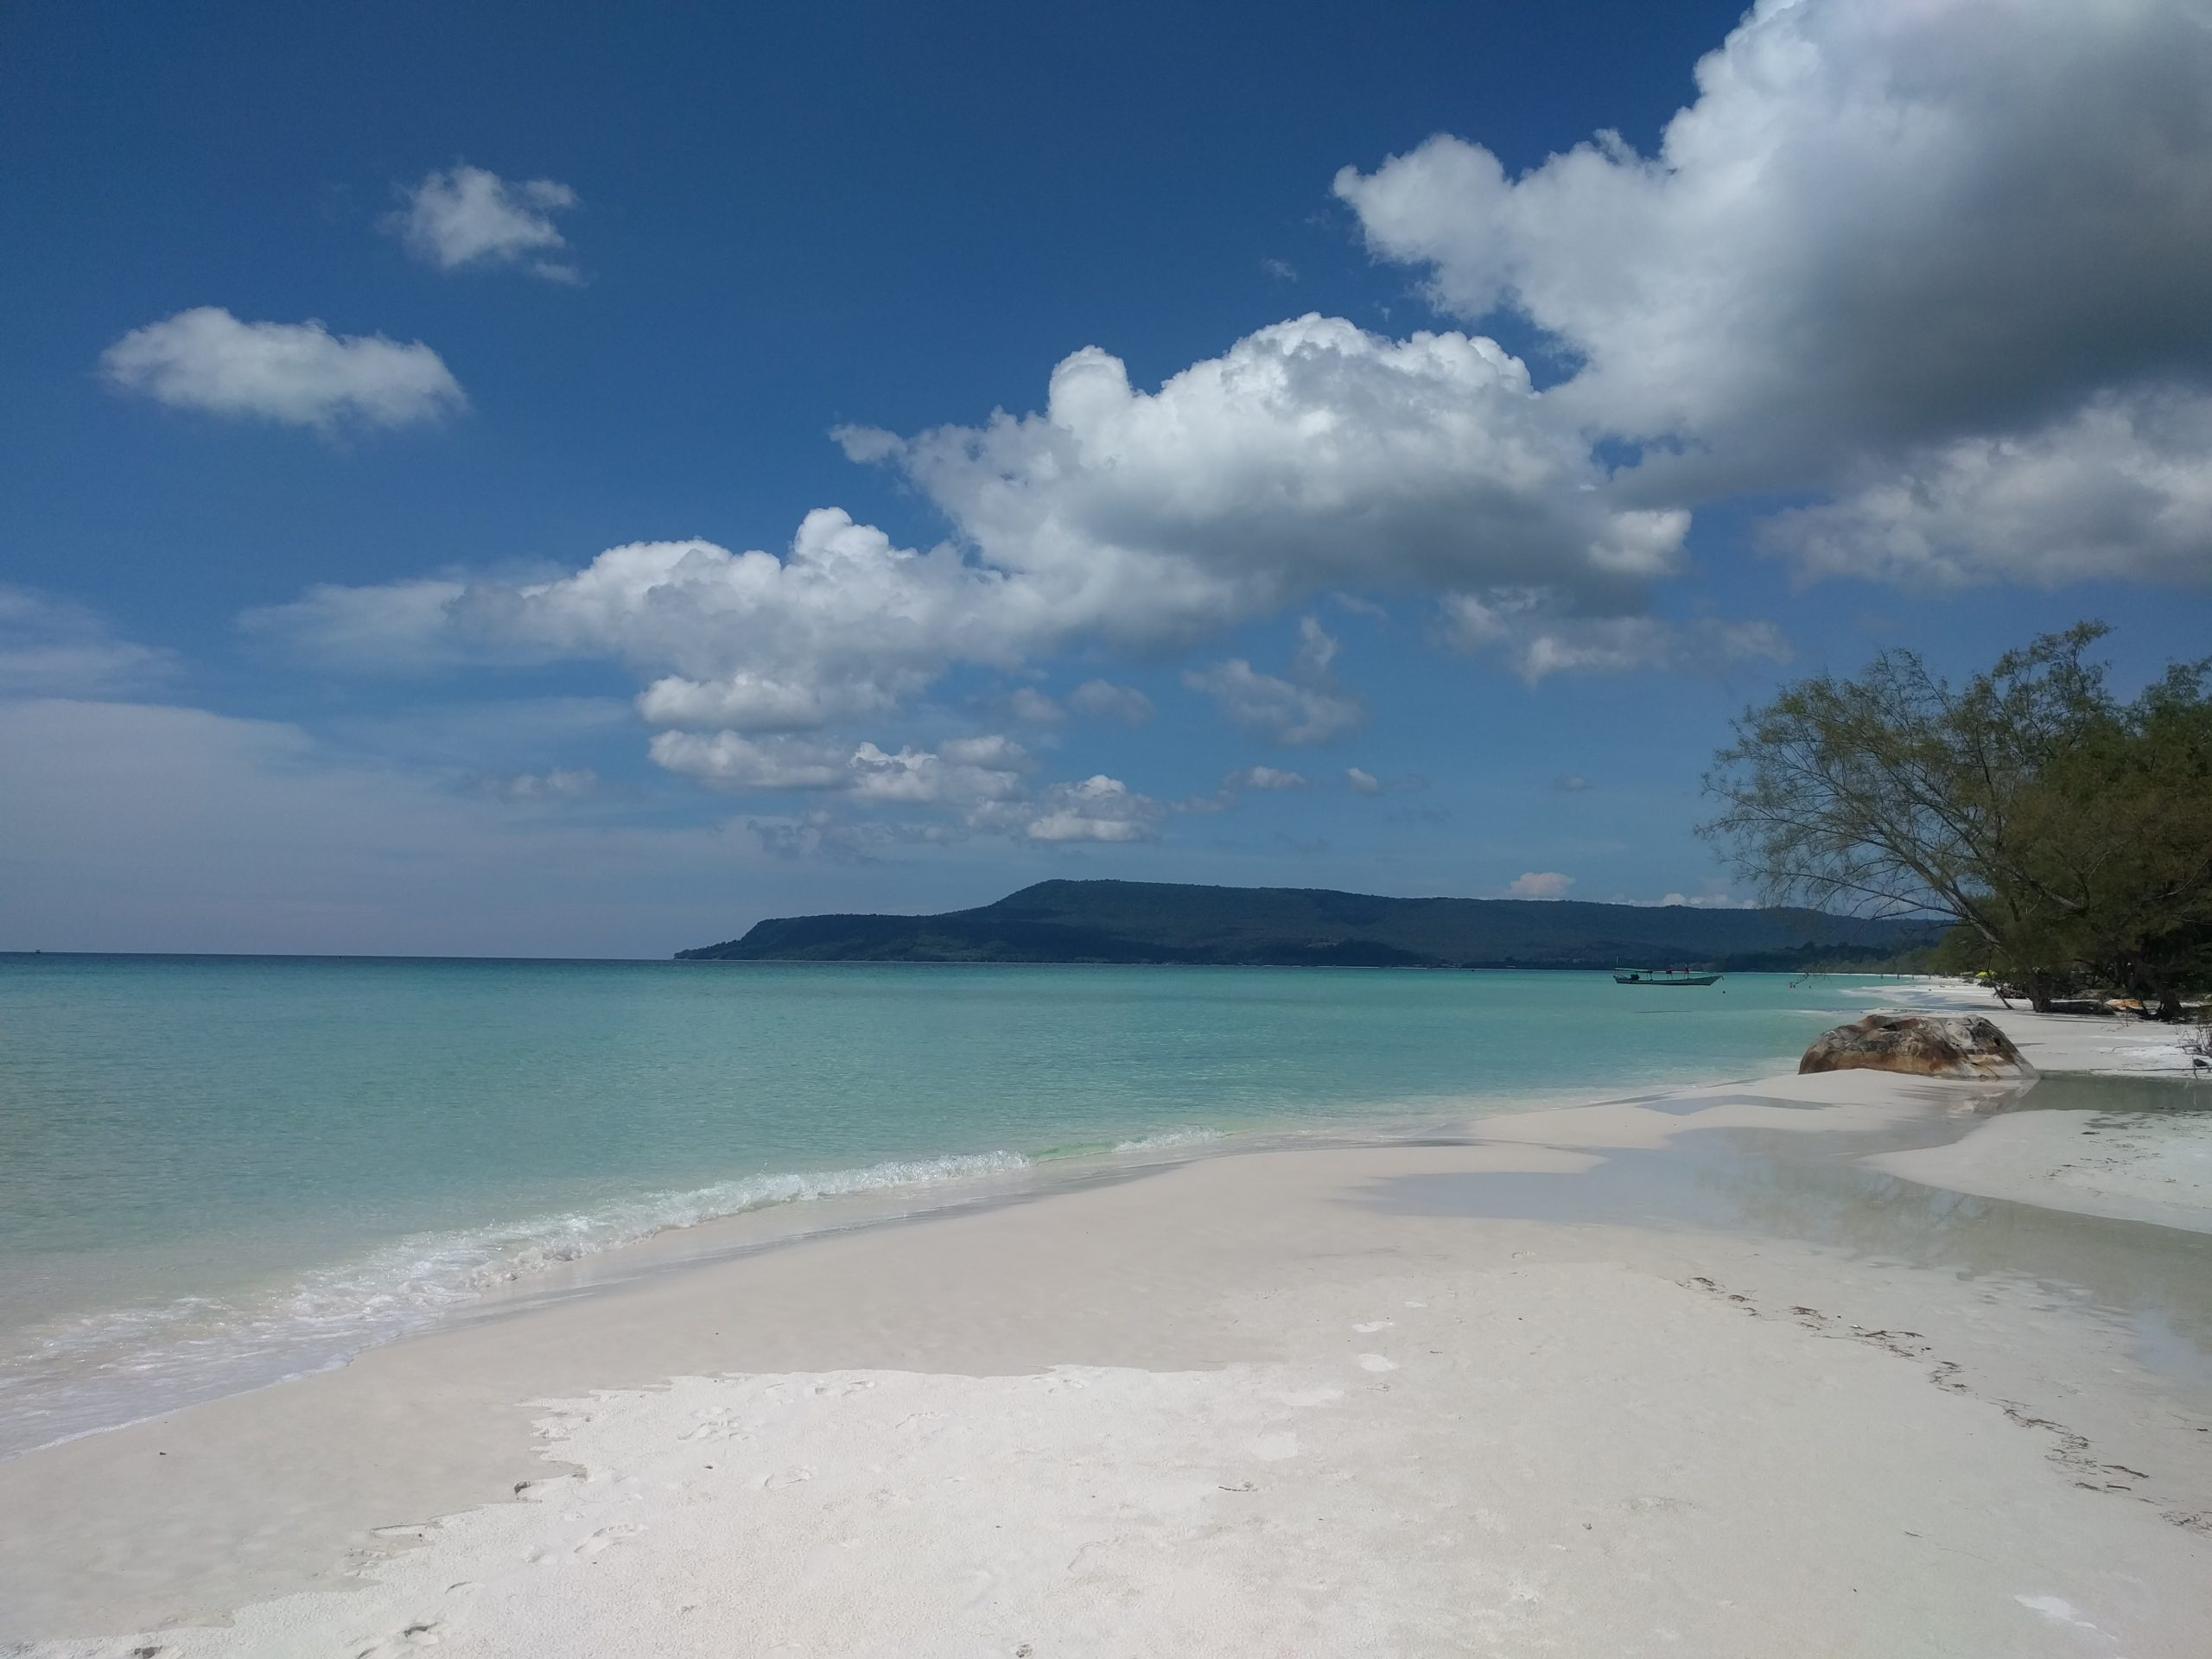 Long Beach, Koh Rong - Top Beache in Cambodia to Enjoy The Turquoise Ocean